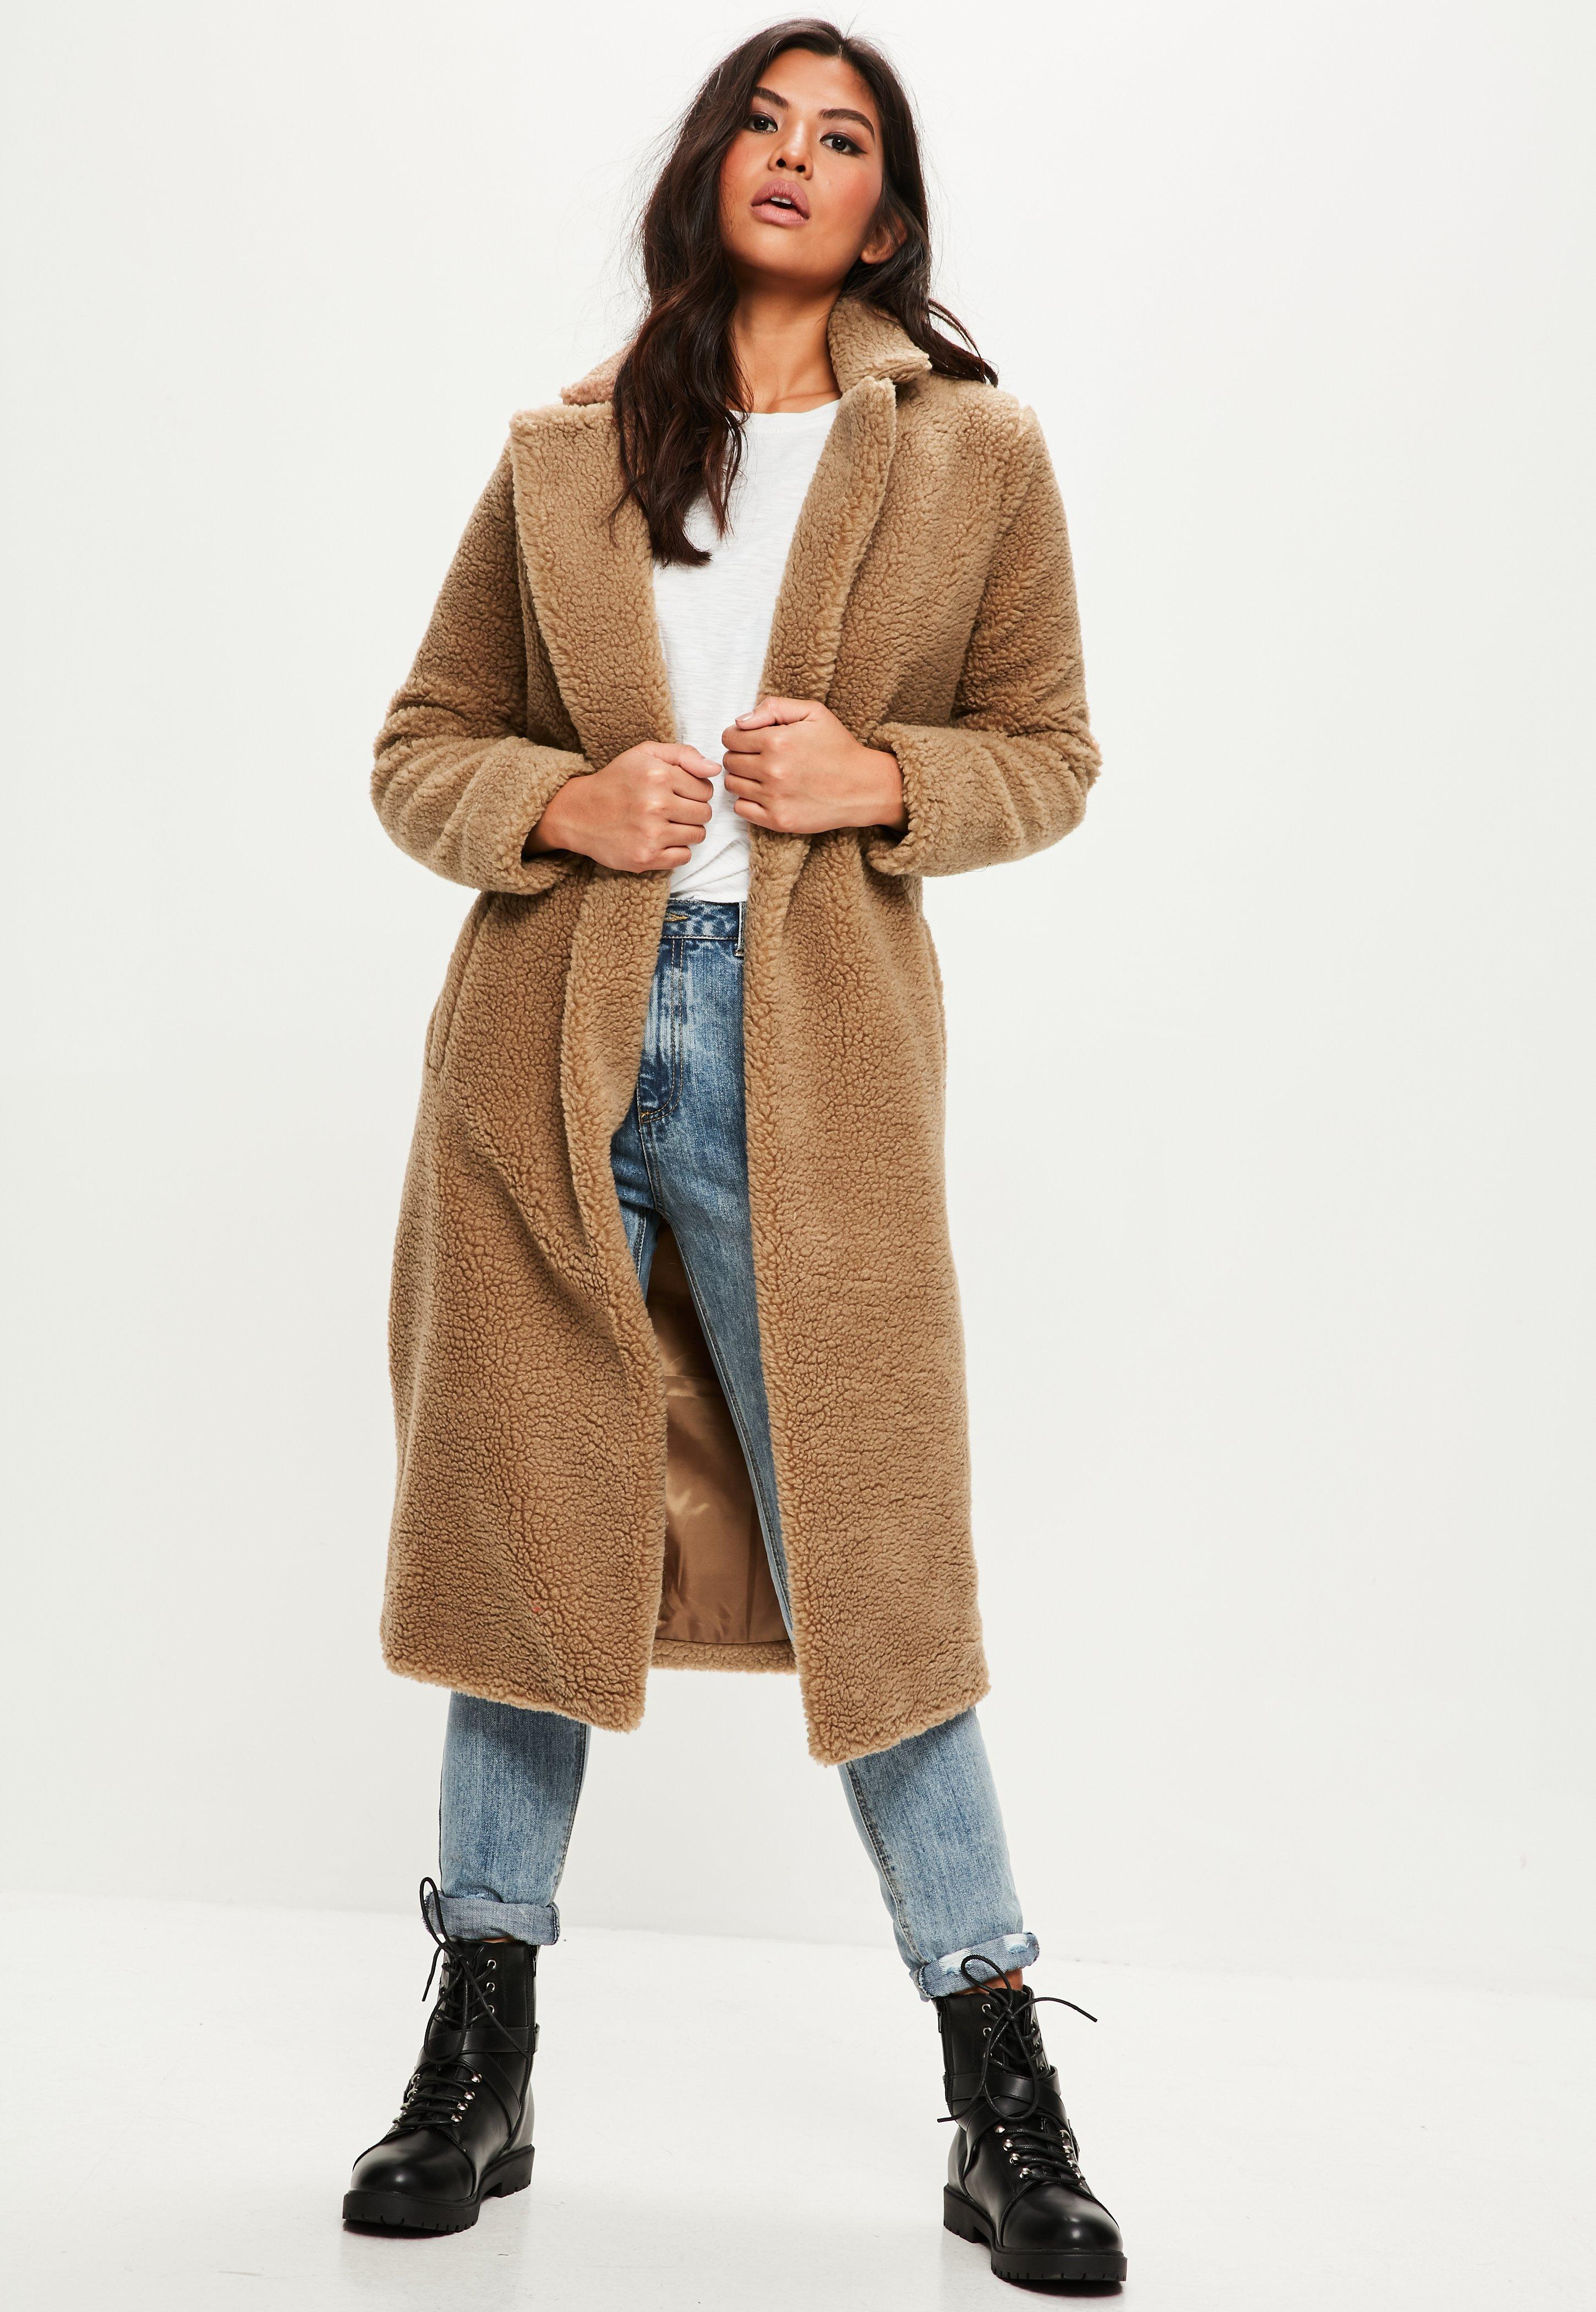 Lyst Missguided Tan Borg Teddy Coat In Brown